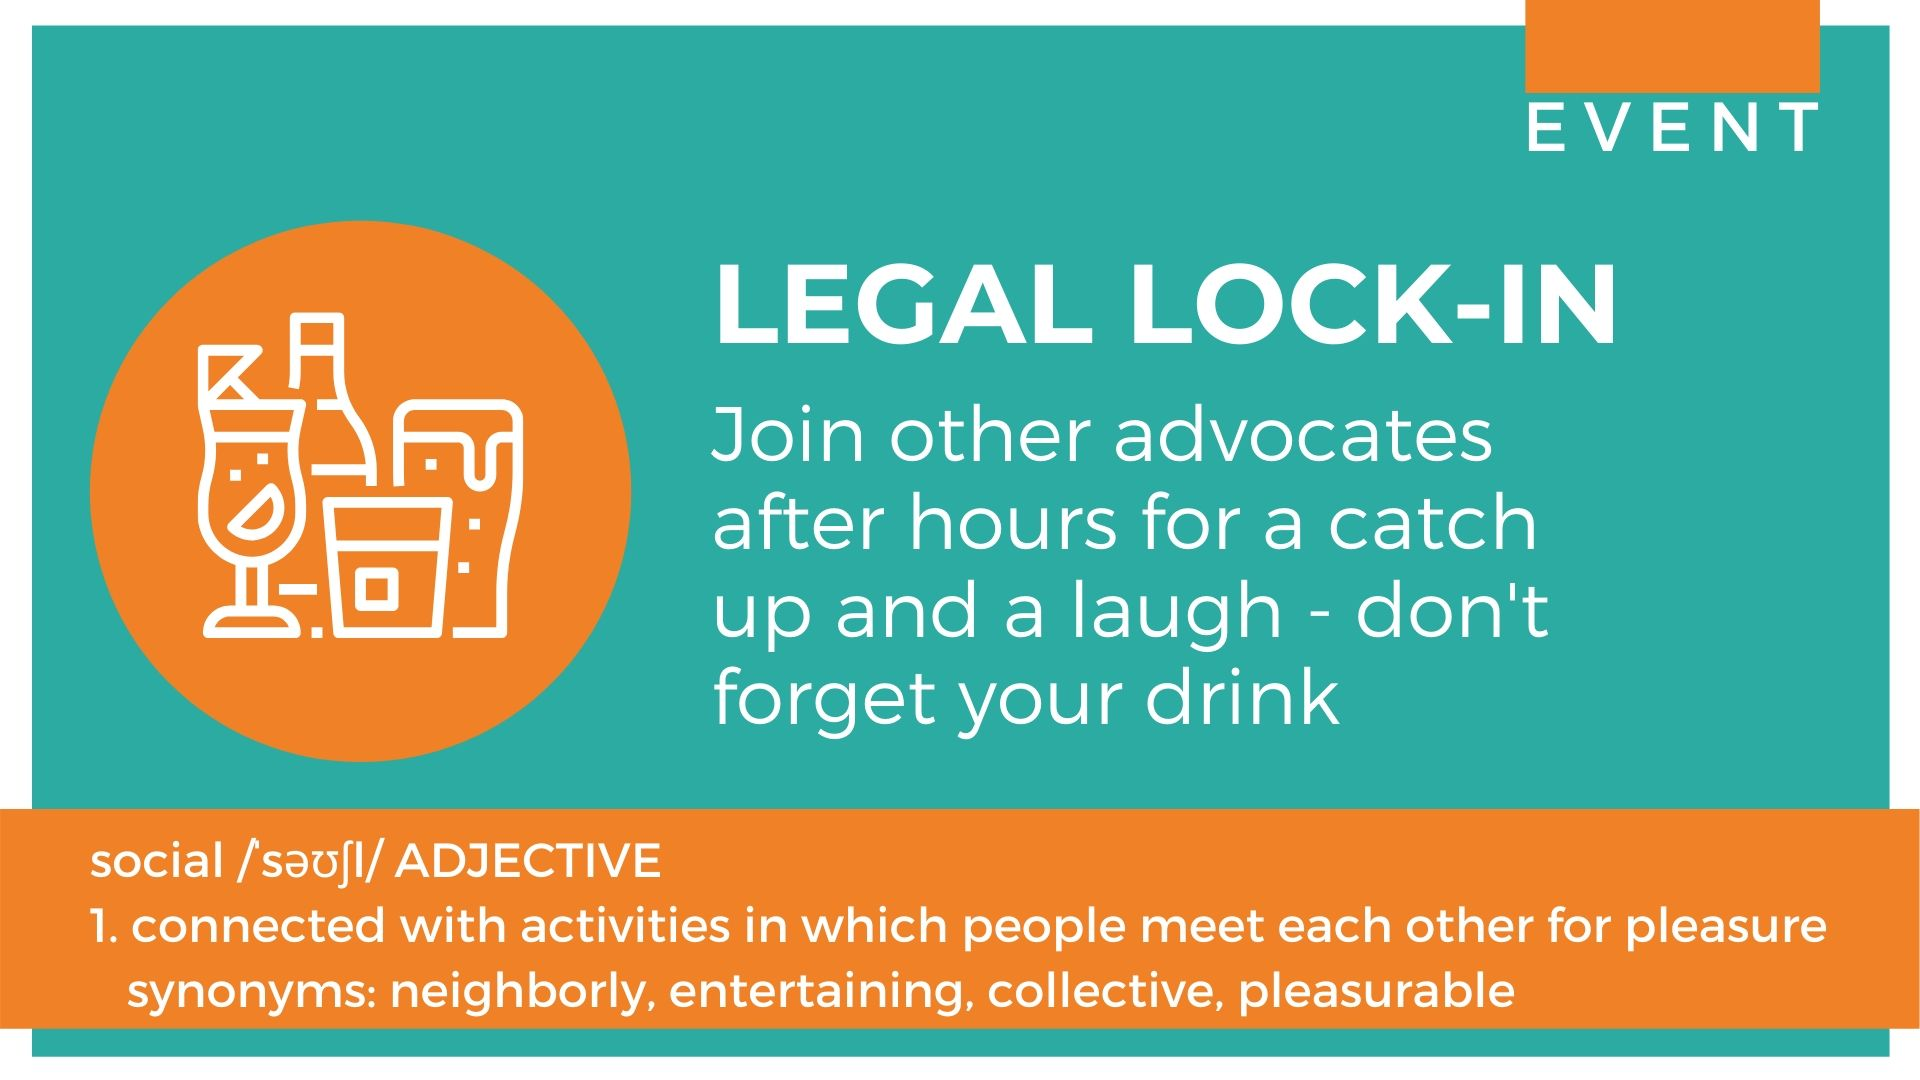 The NetworkIN legal lock-in